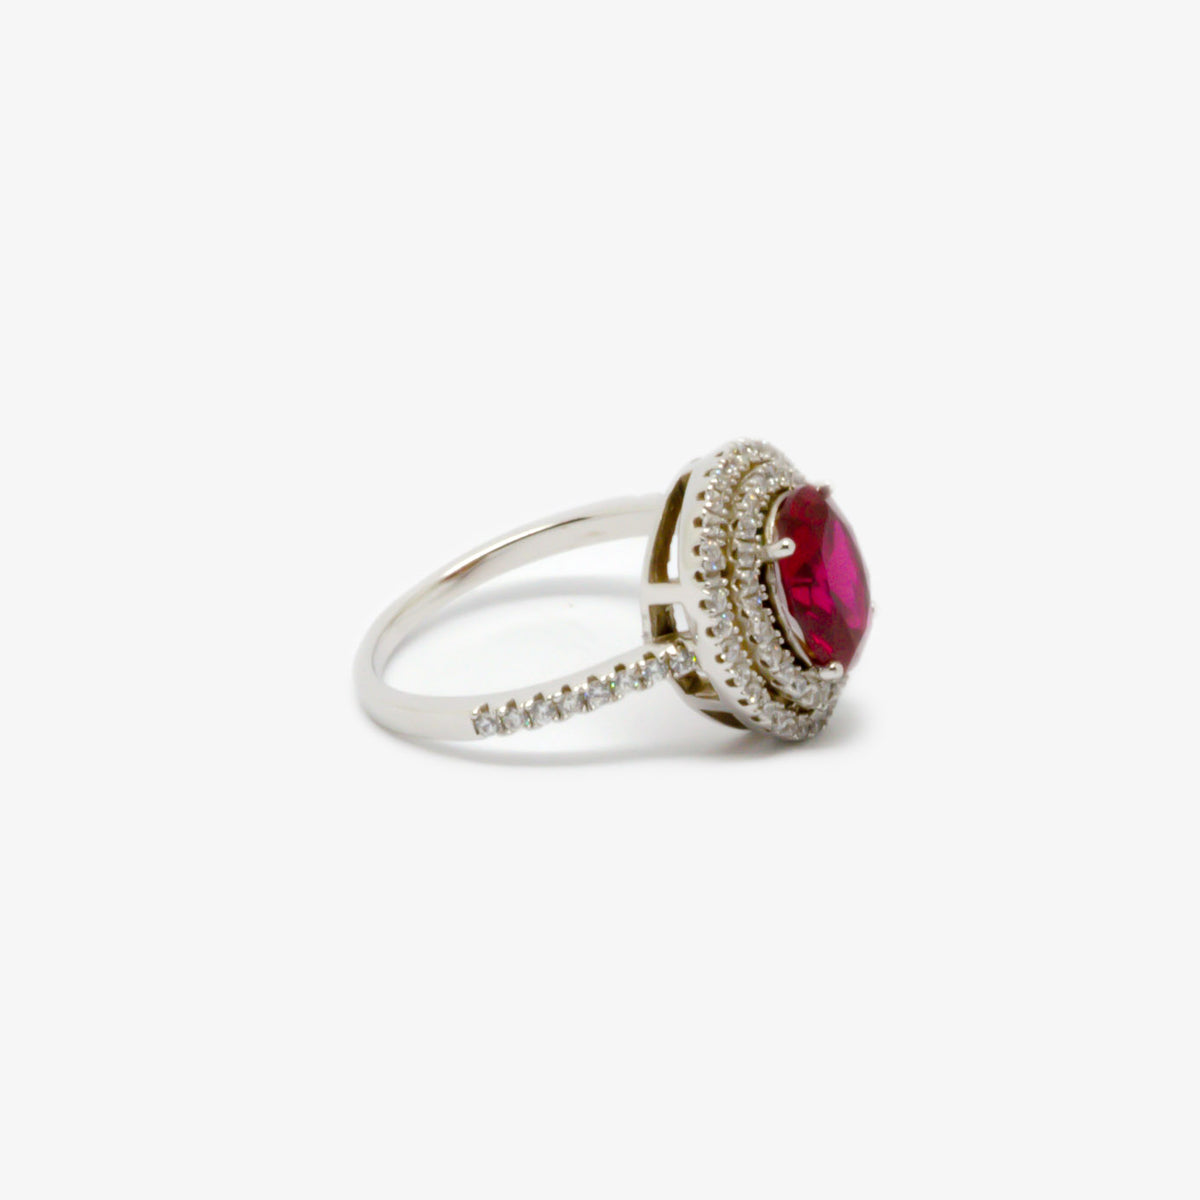 Right side view of the double halo cubic zirconia red oval ring picture.